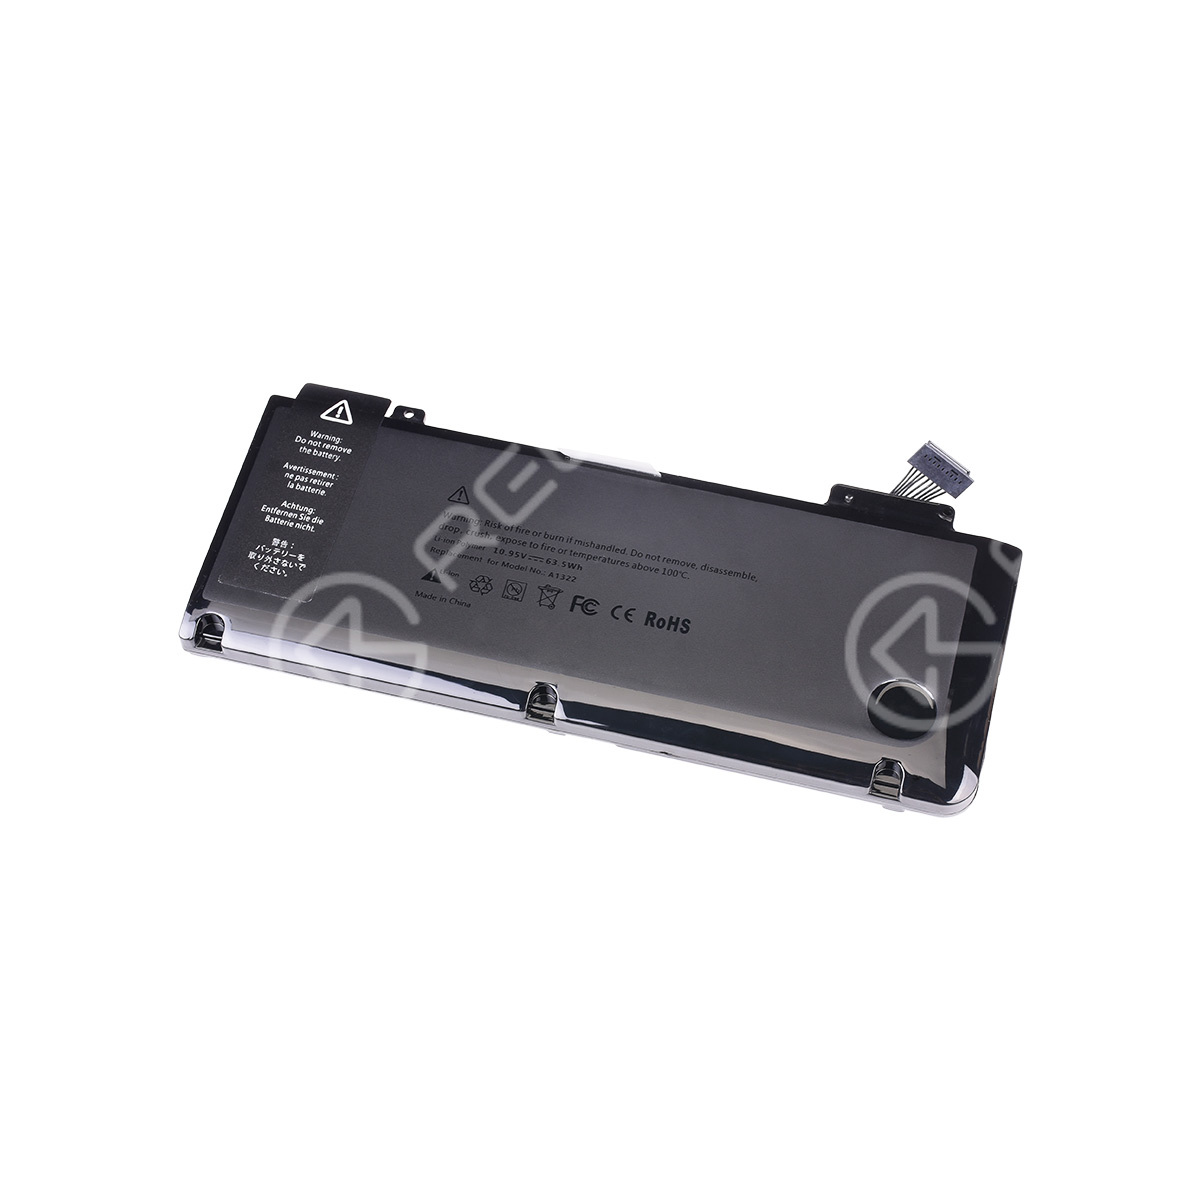 Battery A1322 Compatible For Macbook Pro 13 inch A1278(Mid 2009 - Mid 2012)